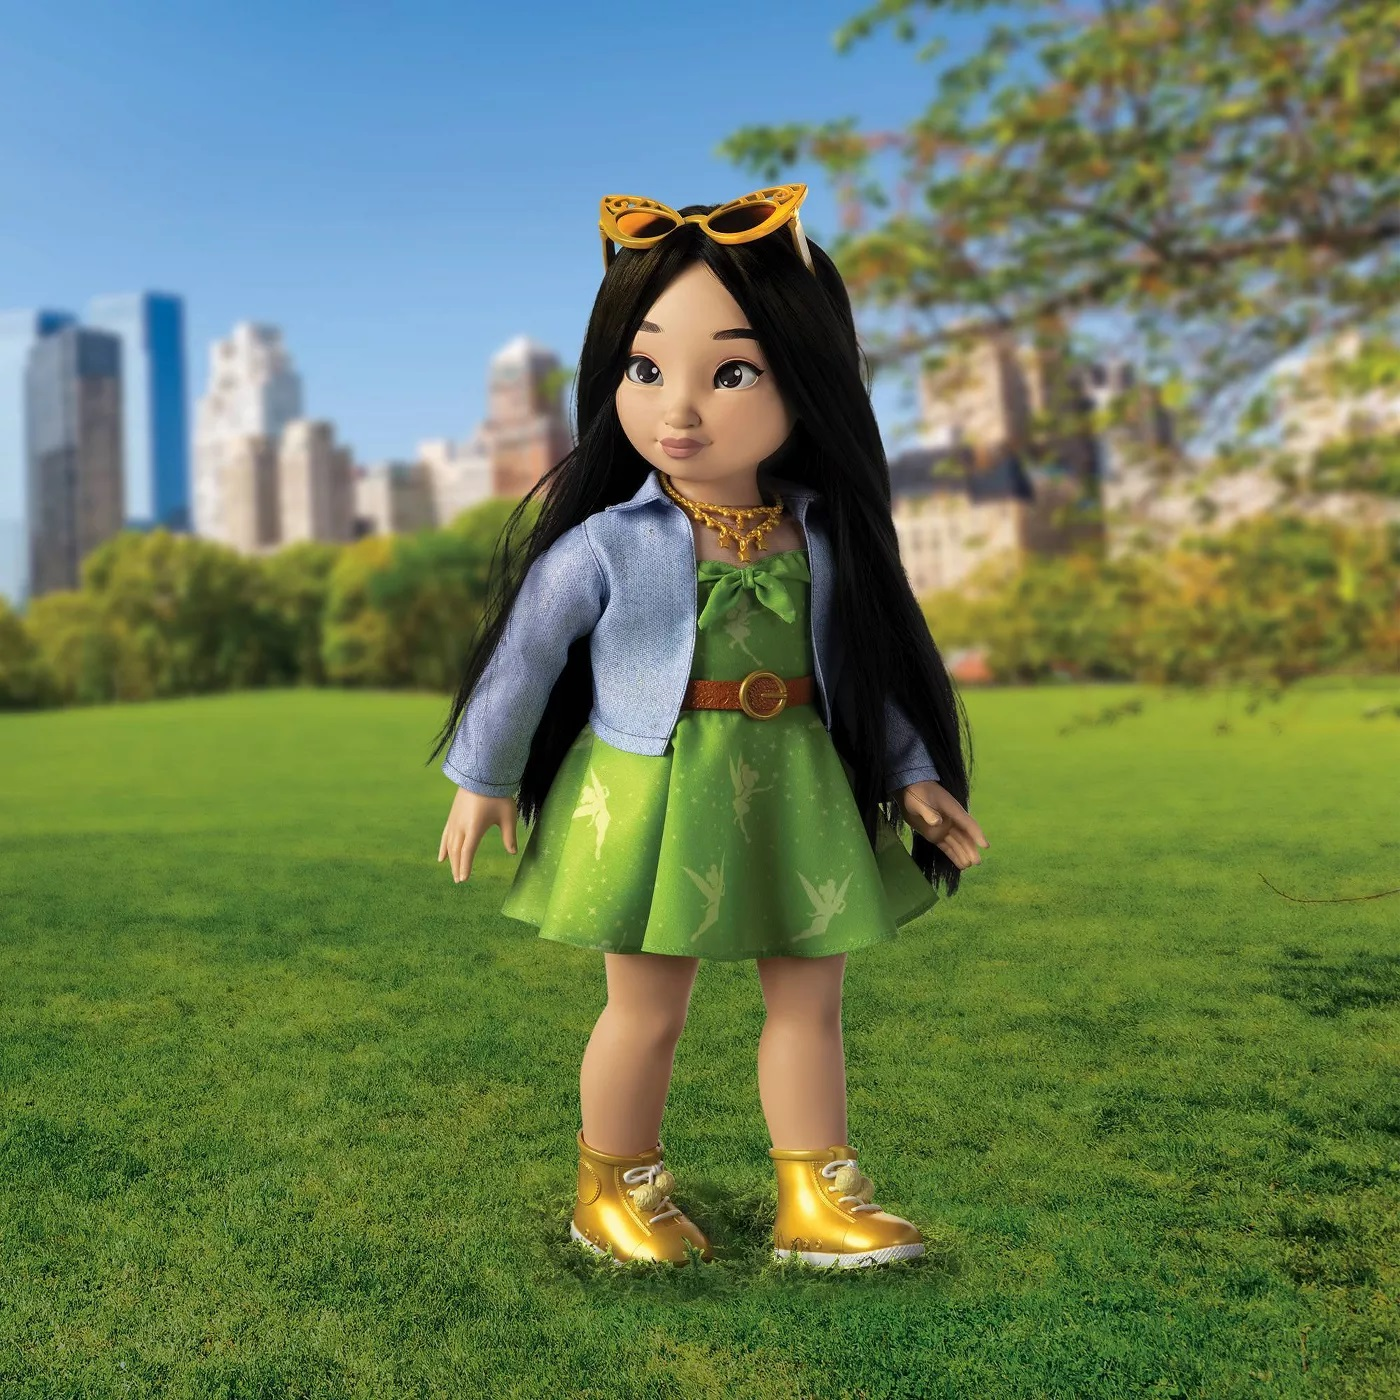 Disney ily 4EVER fashion doll collection is now available at Target 20